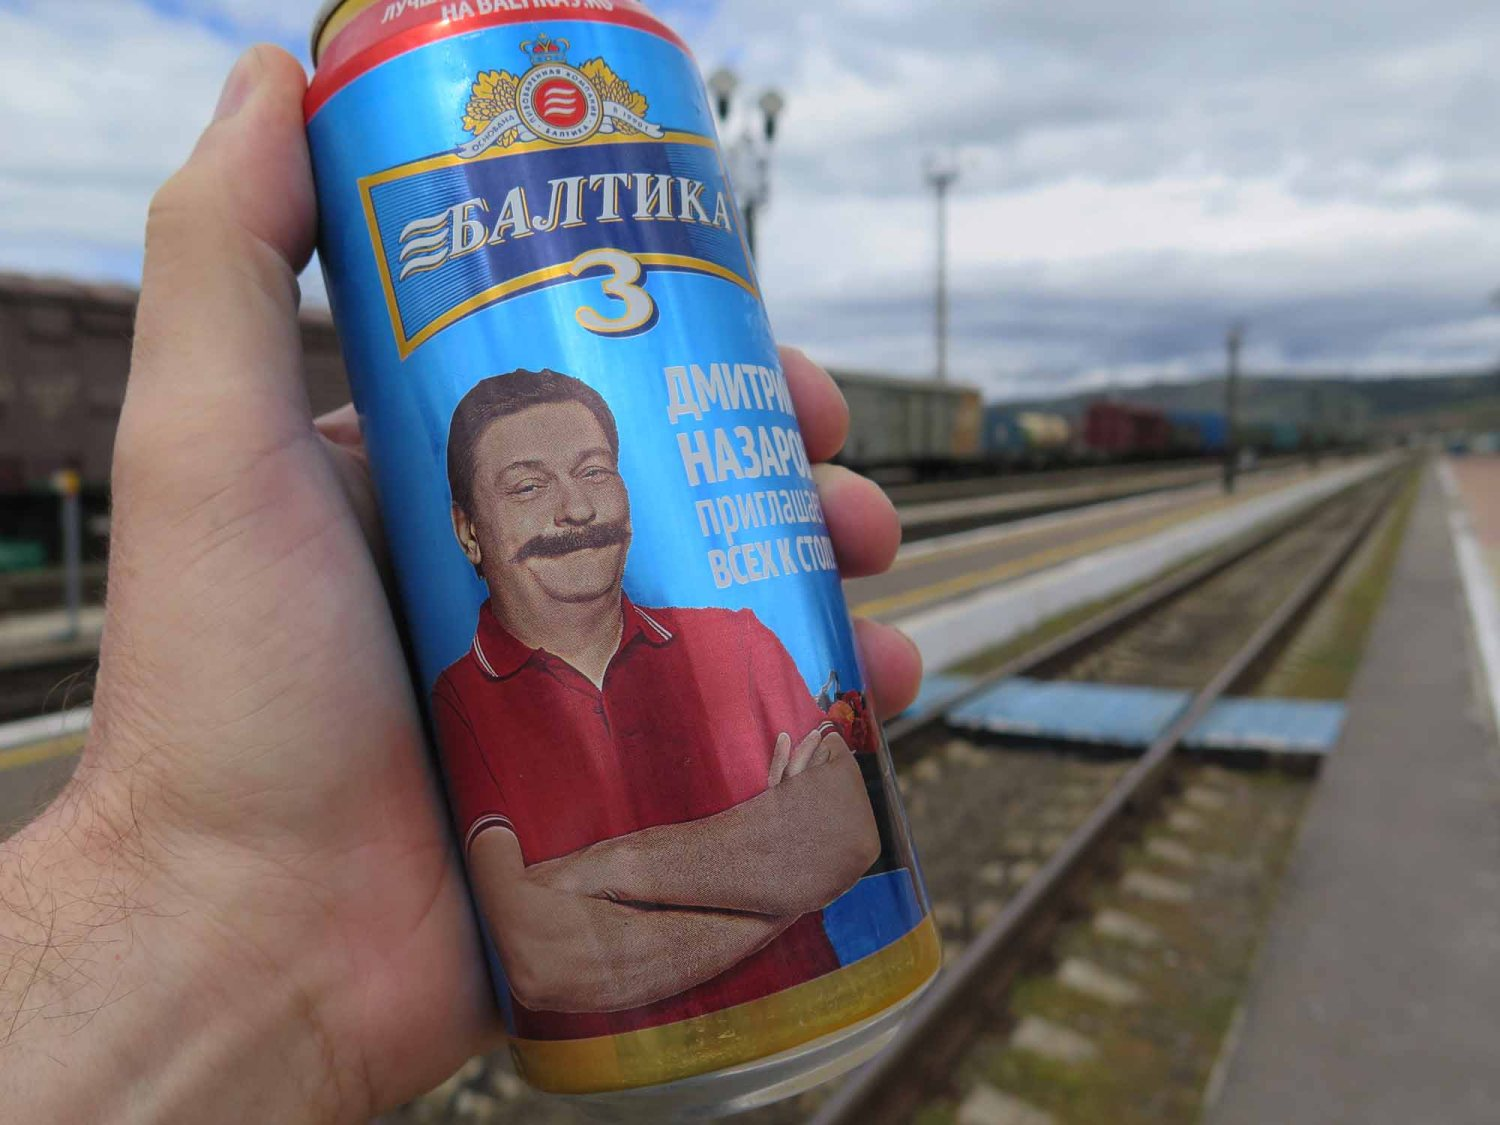 Russia-Trans-Siberian-Railway-Food-And-Drink-Beer-Man